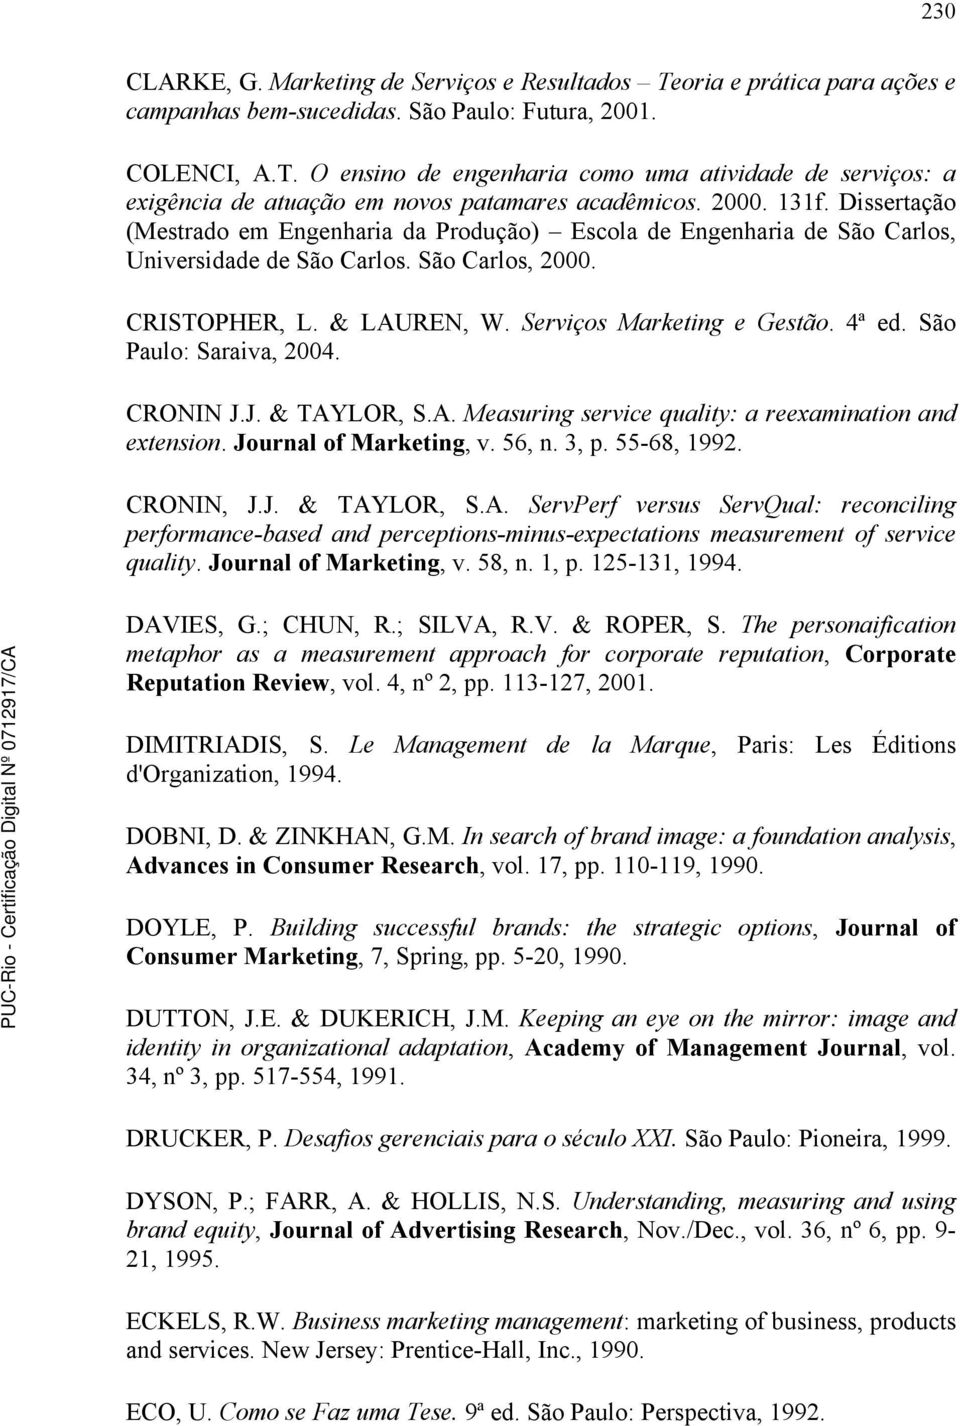 4ª ed. São Paulo: Saraiva, 2004. CRONIN J.J. & TAYLOR, S.A. Measuring service quality: a reexamination and extension. Journal of Marketing, v. 56, n. 3, p. 55-68, 1992. CRONIN, J.J. & TAYLOR, S.A. ServPerf versus ServQual: reconciling performance-based and perceptions-minus-expectations measurement of service quality.